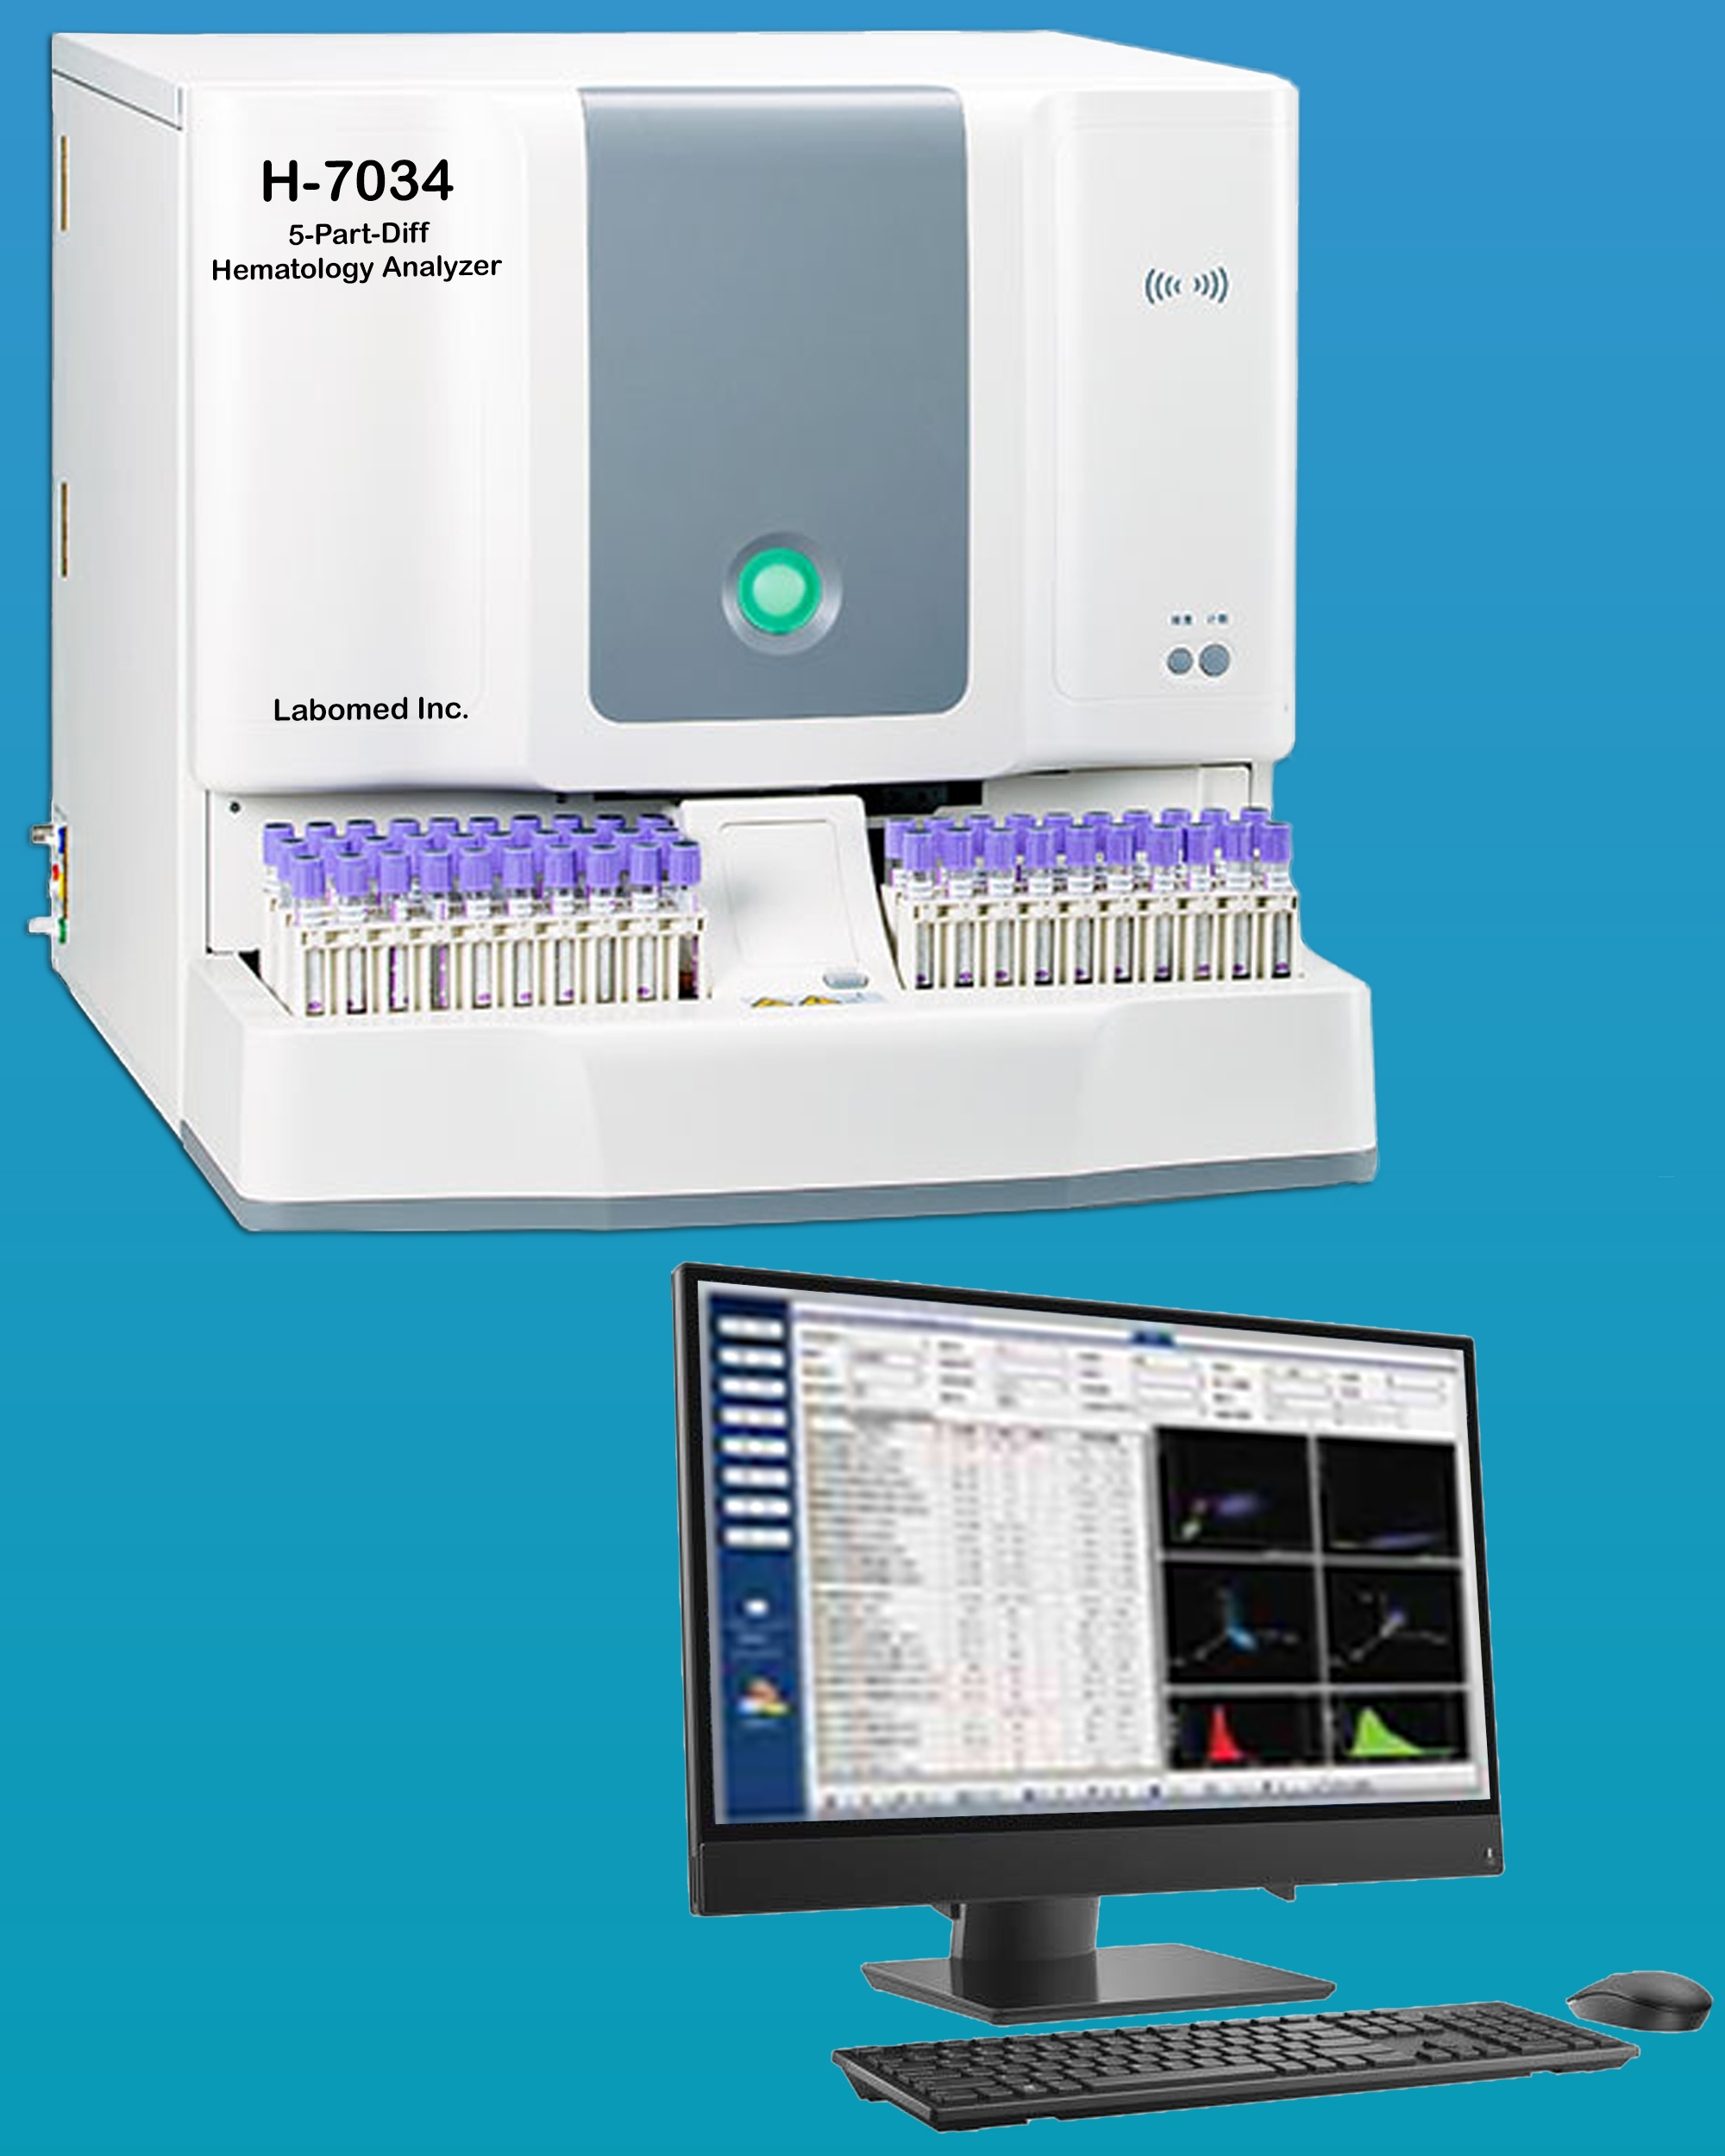 [H-7034] Fully Automatic Hematology Analyzer with Reticulocyte Testing, Auto Sampler, 34 Parameter and 60 Test / Hour